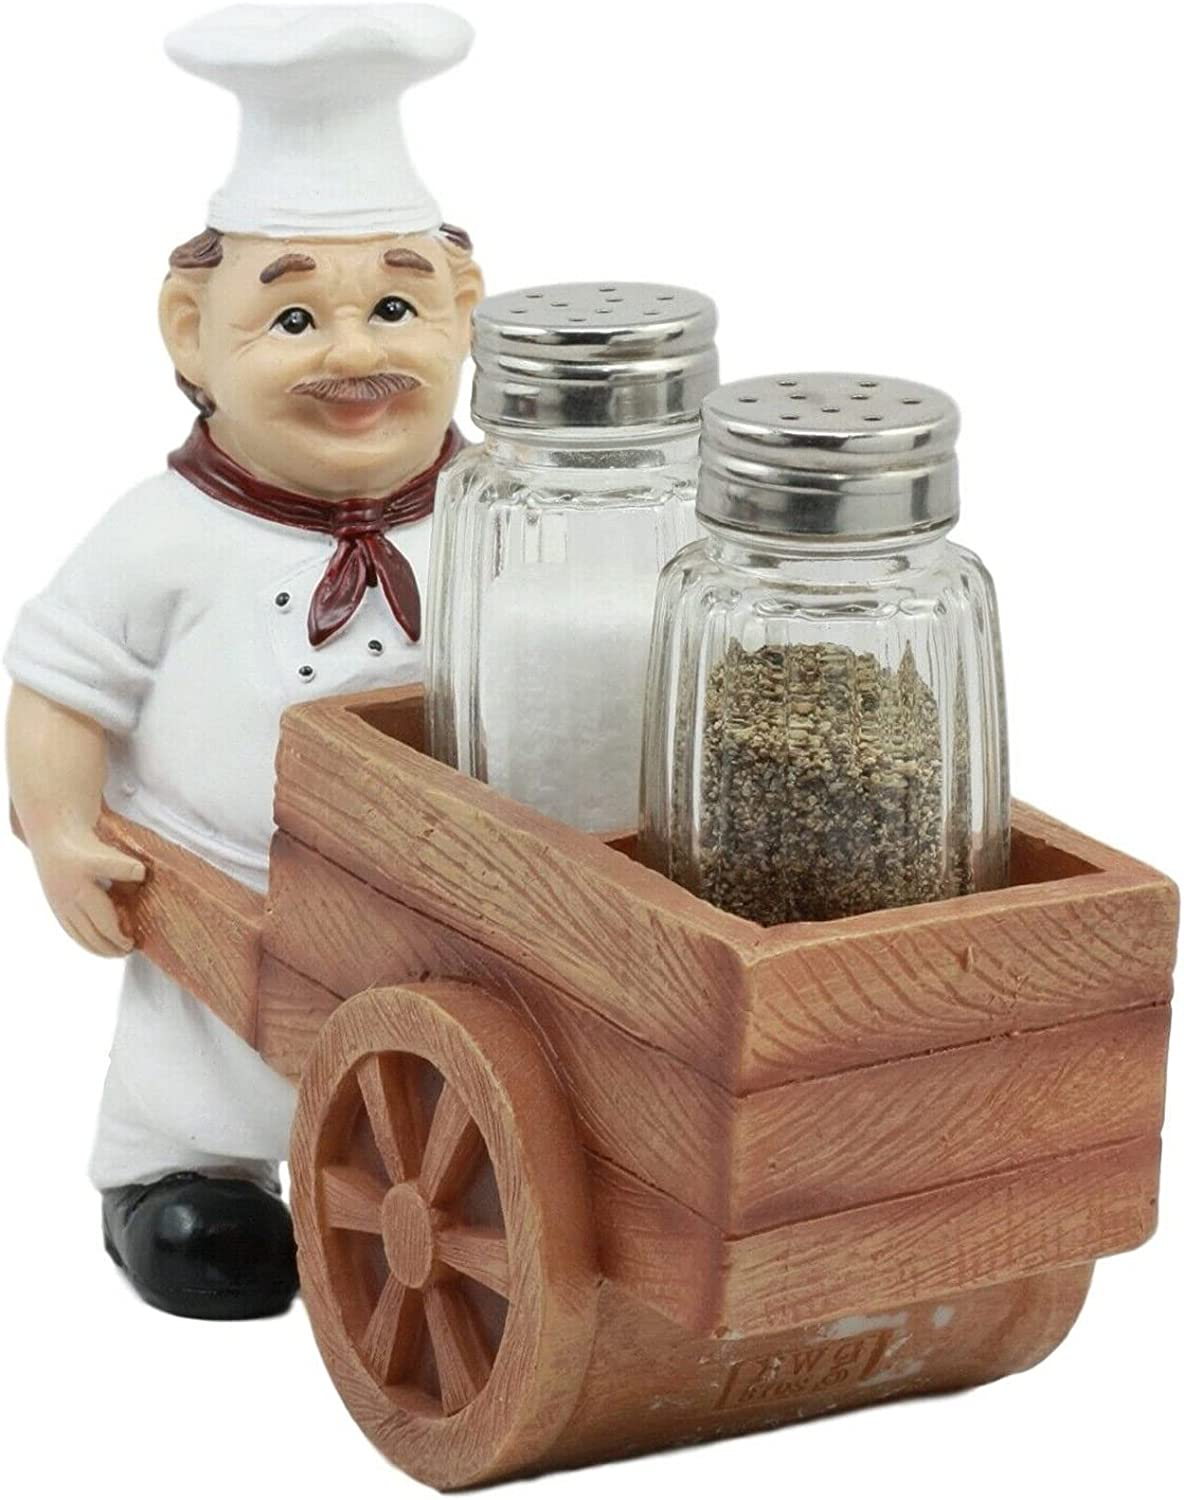 New Spice A La Popular brand in the world Carte Chef Salt and Wheelbarrow Pushing lowest price Pepp Cart